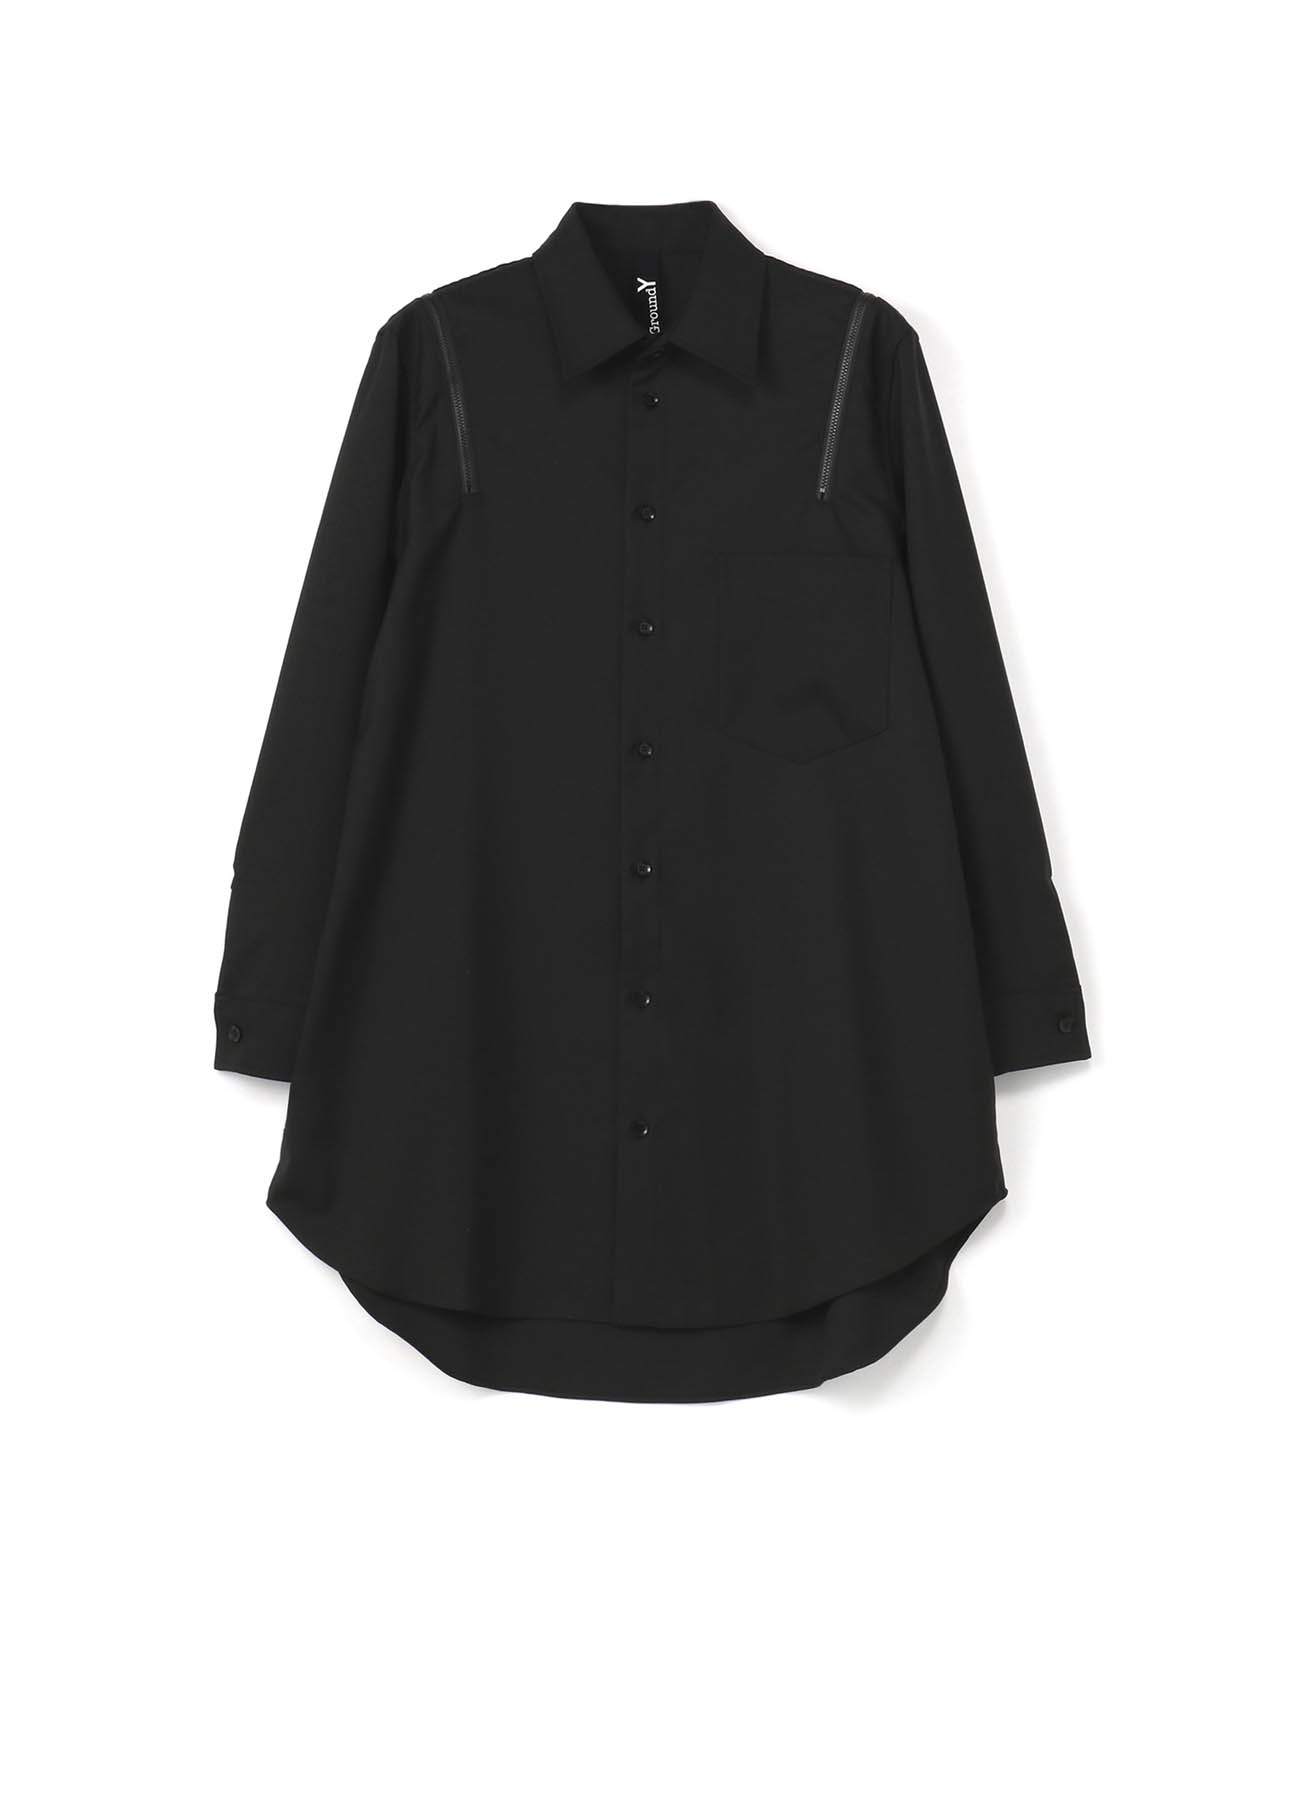 T/W? gaberdine Zipper Shirt